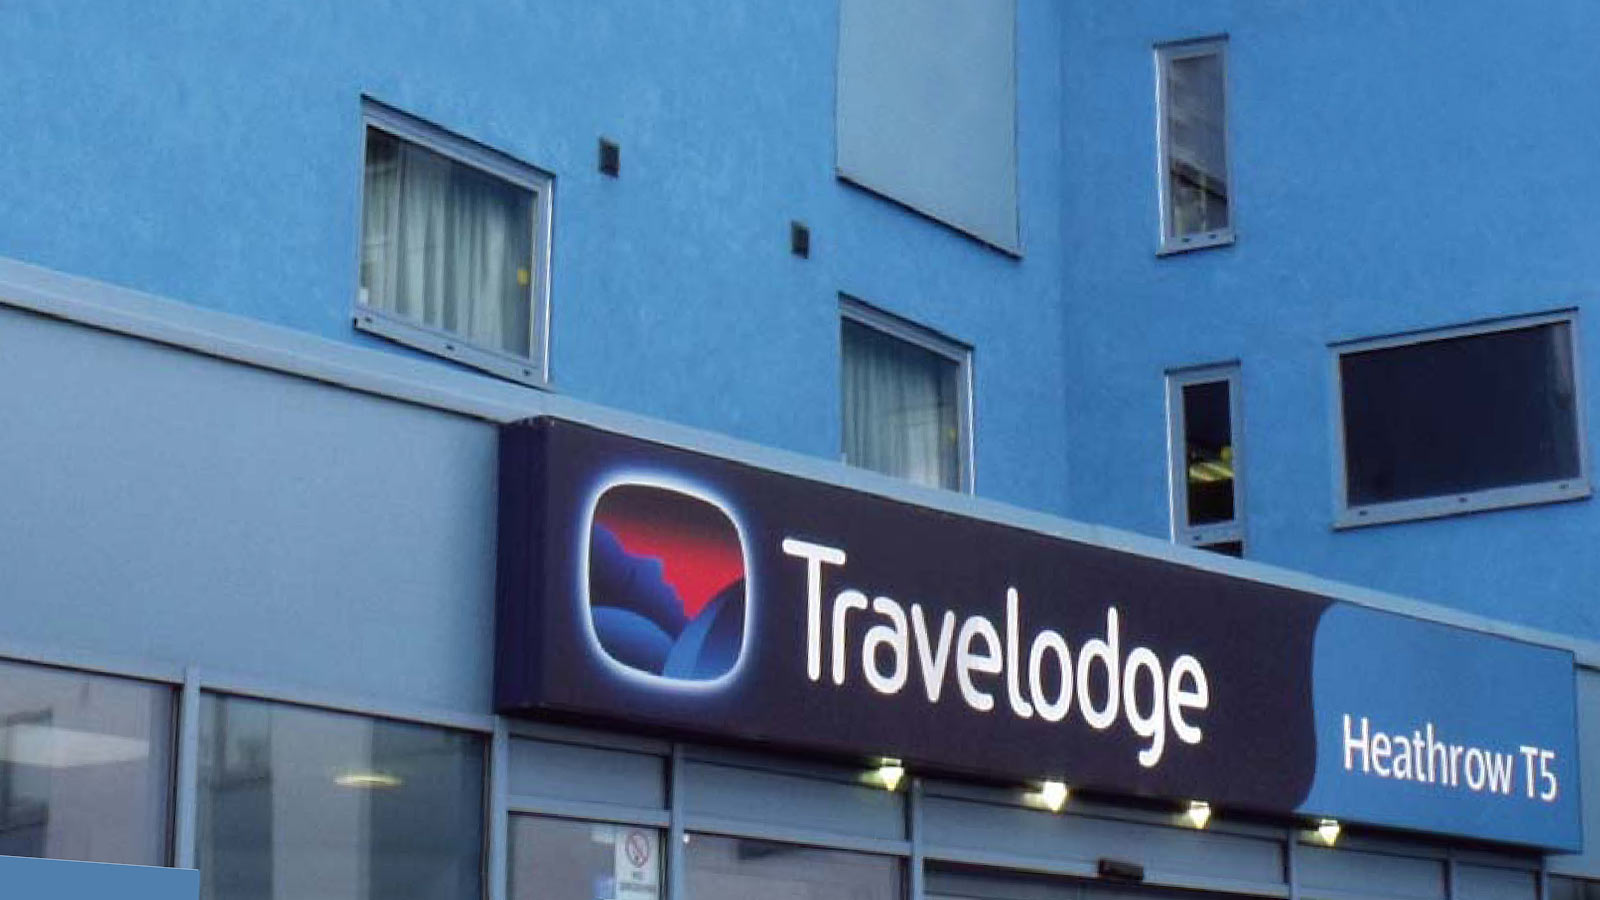 cs-t5-travelodge-heathrow-header.jpg